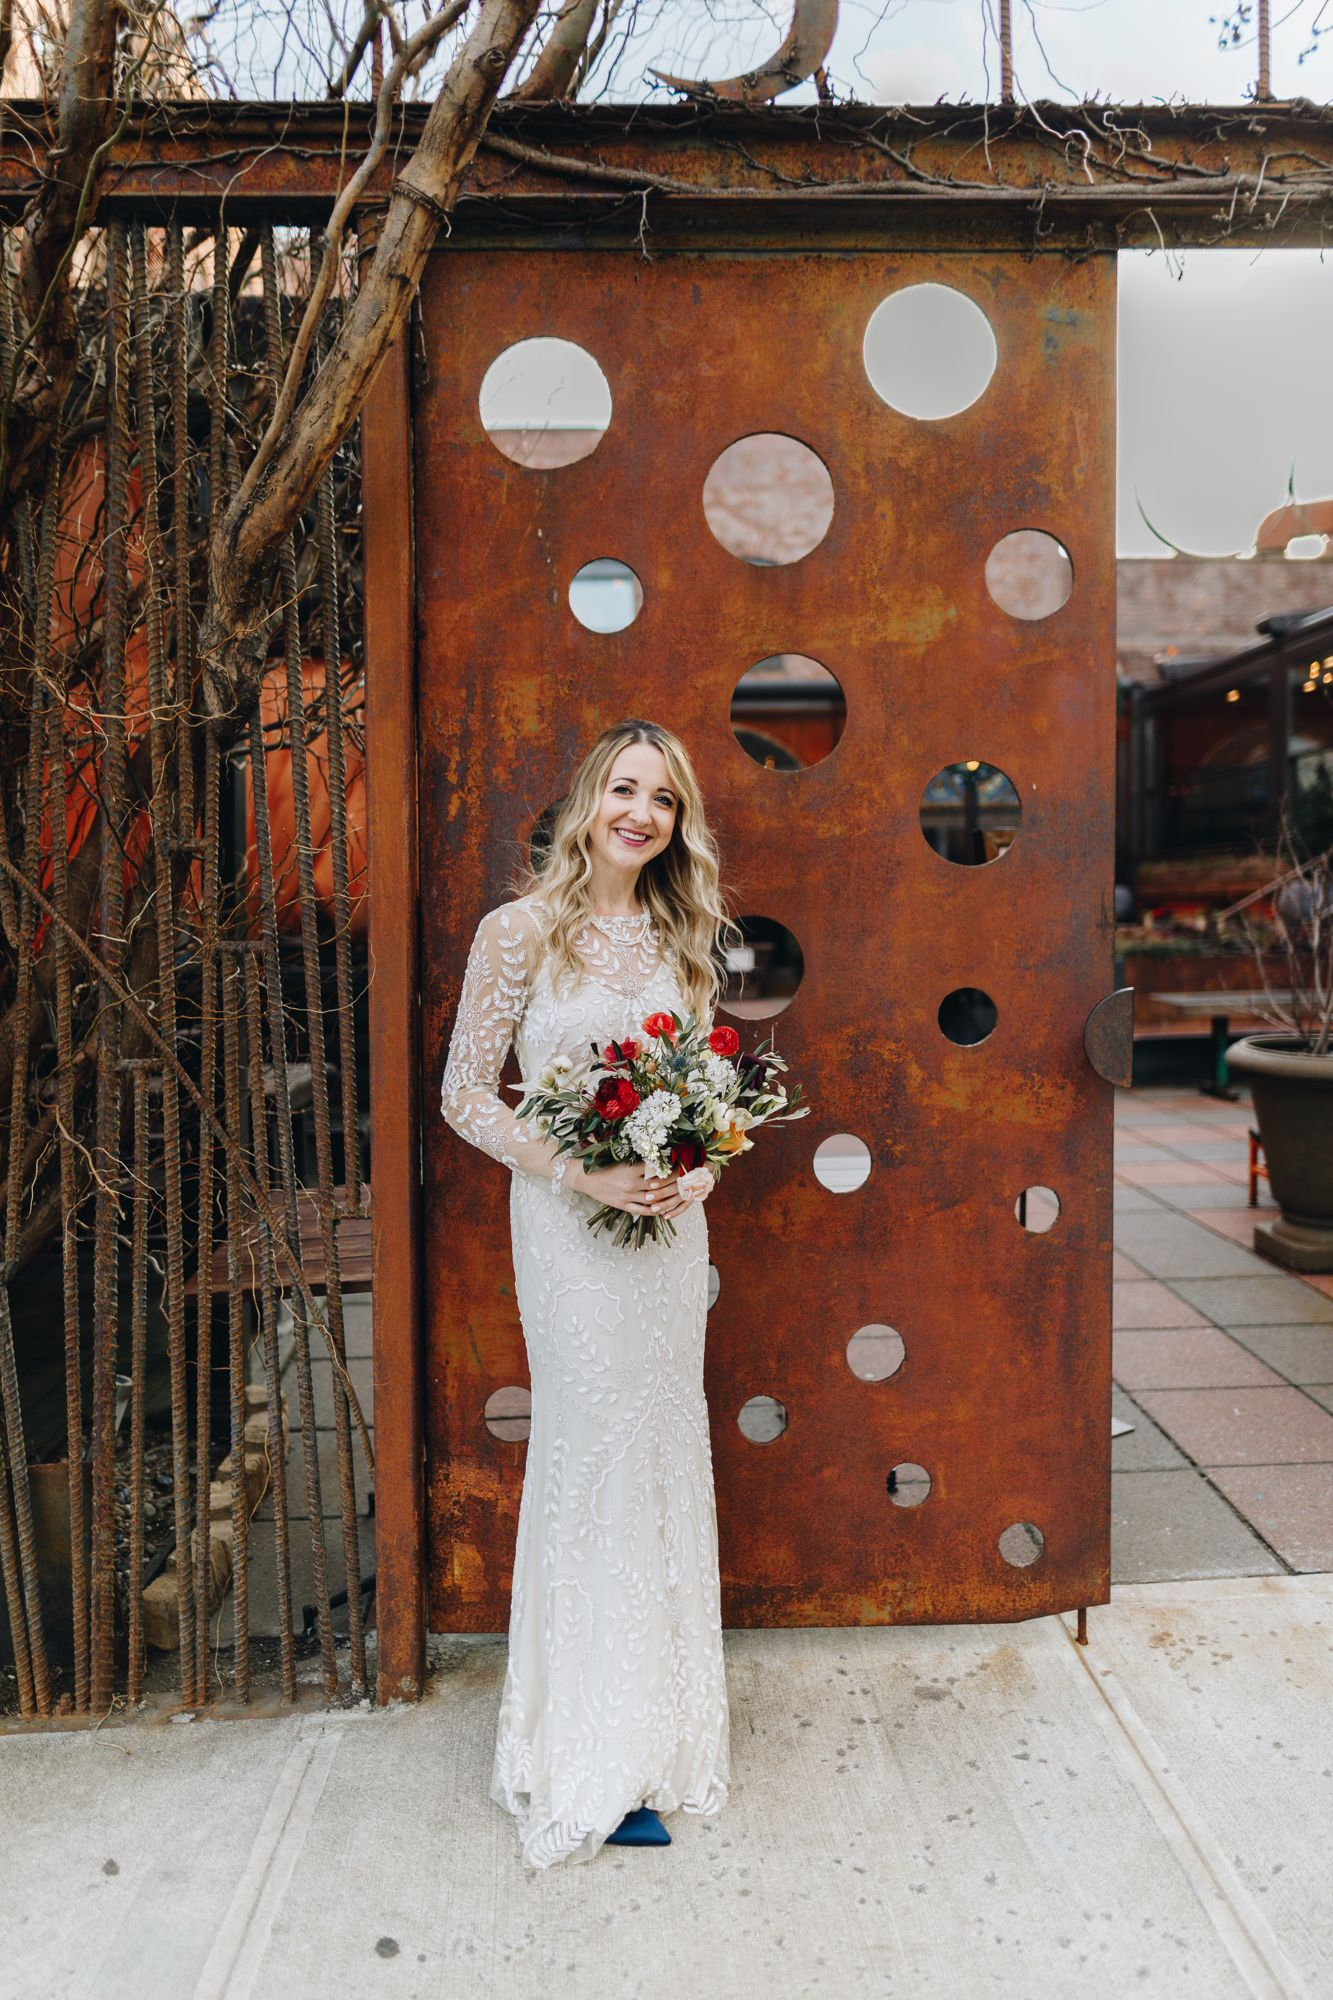 How Much Does A New York Wedding Photographer Cost Bwp Blog In 2020 Wedding Photographer Cost Wedding Photography Cost Wedding Photography Contract